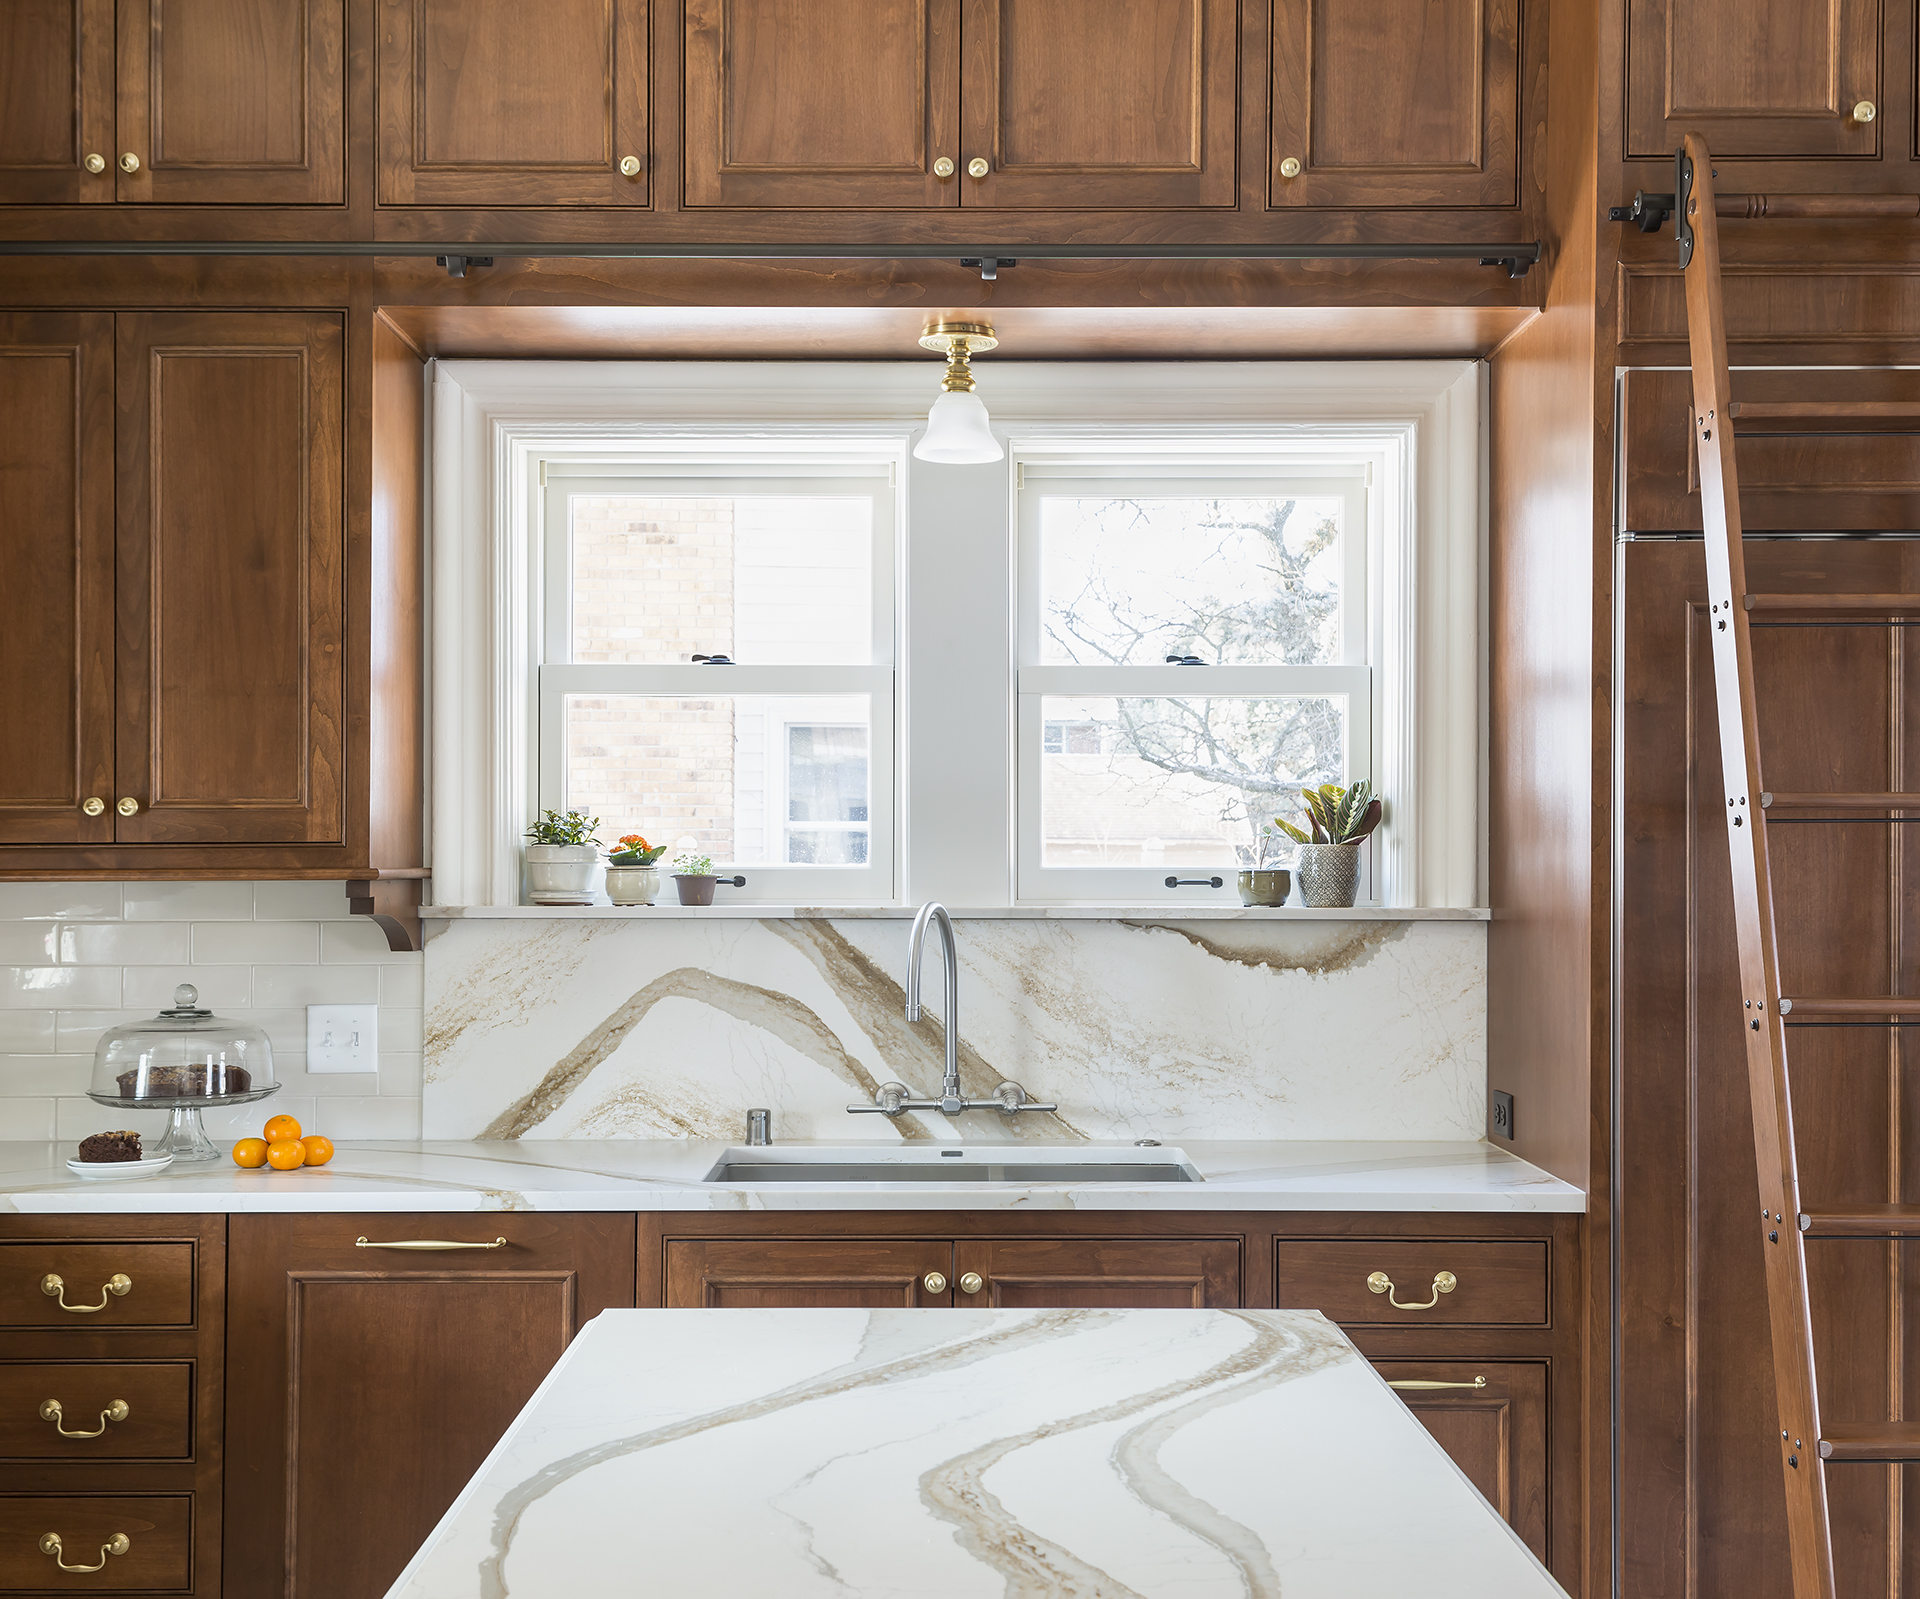 Continuing the countertop material on the backsplash creates a stunning focal point in the kitchen and adds continuity.